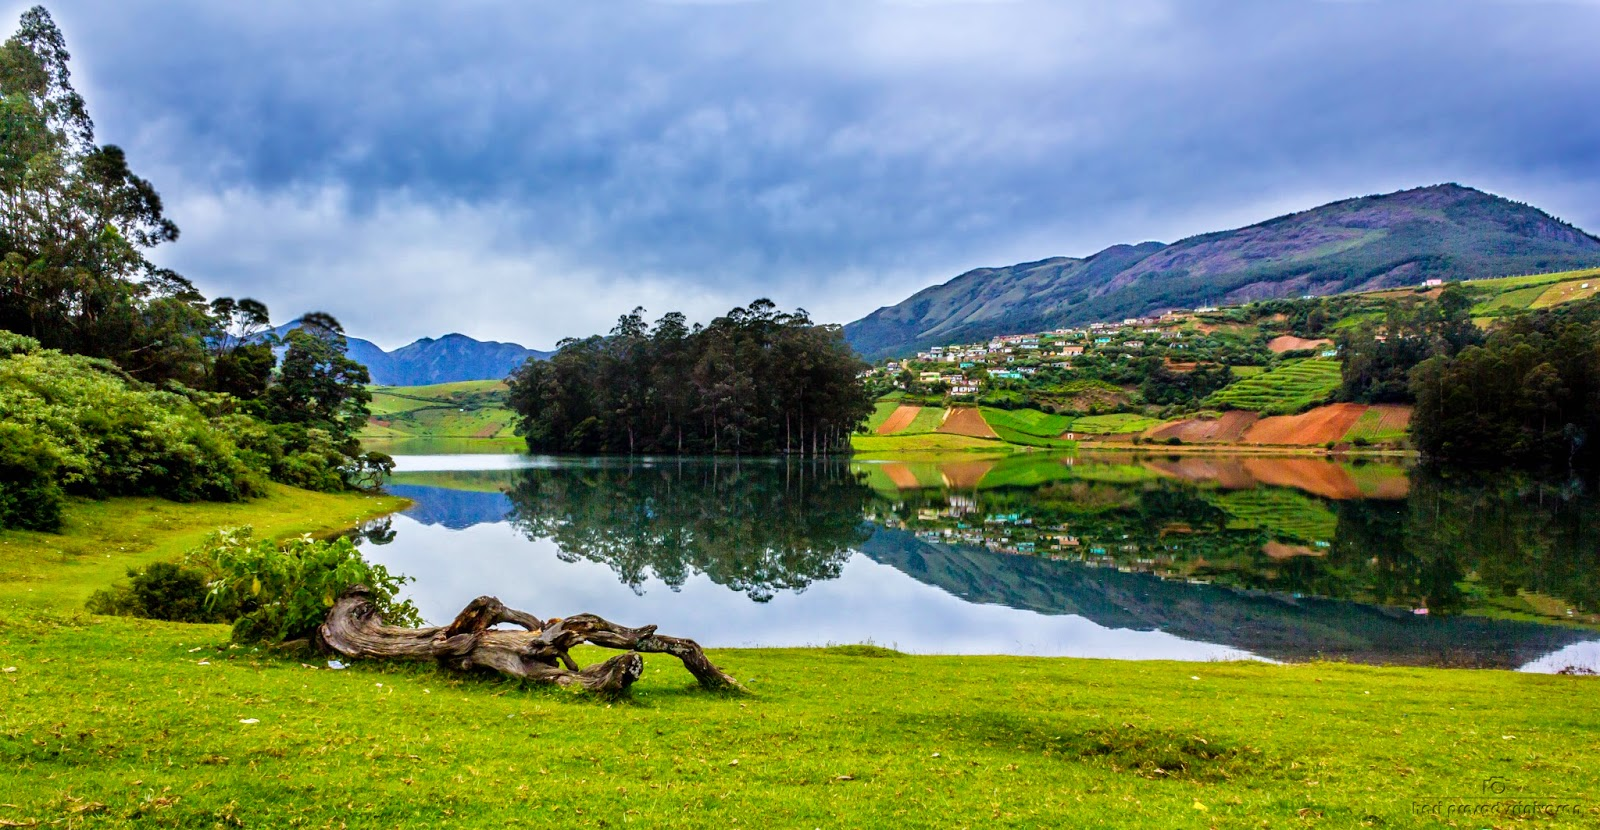 Landscape photo near Avalanche lake Ooty with school kids on the shore